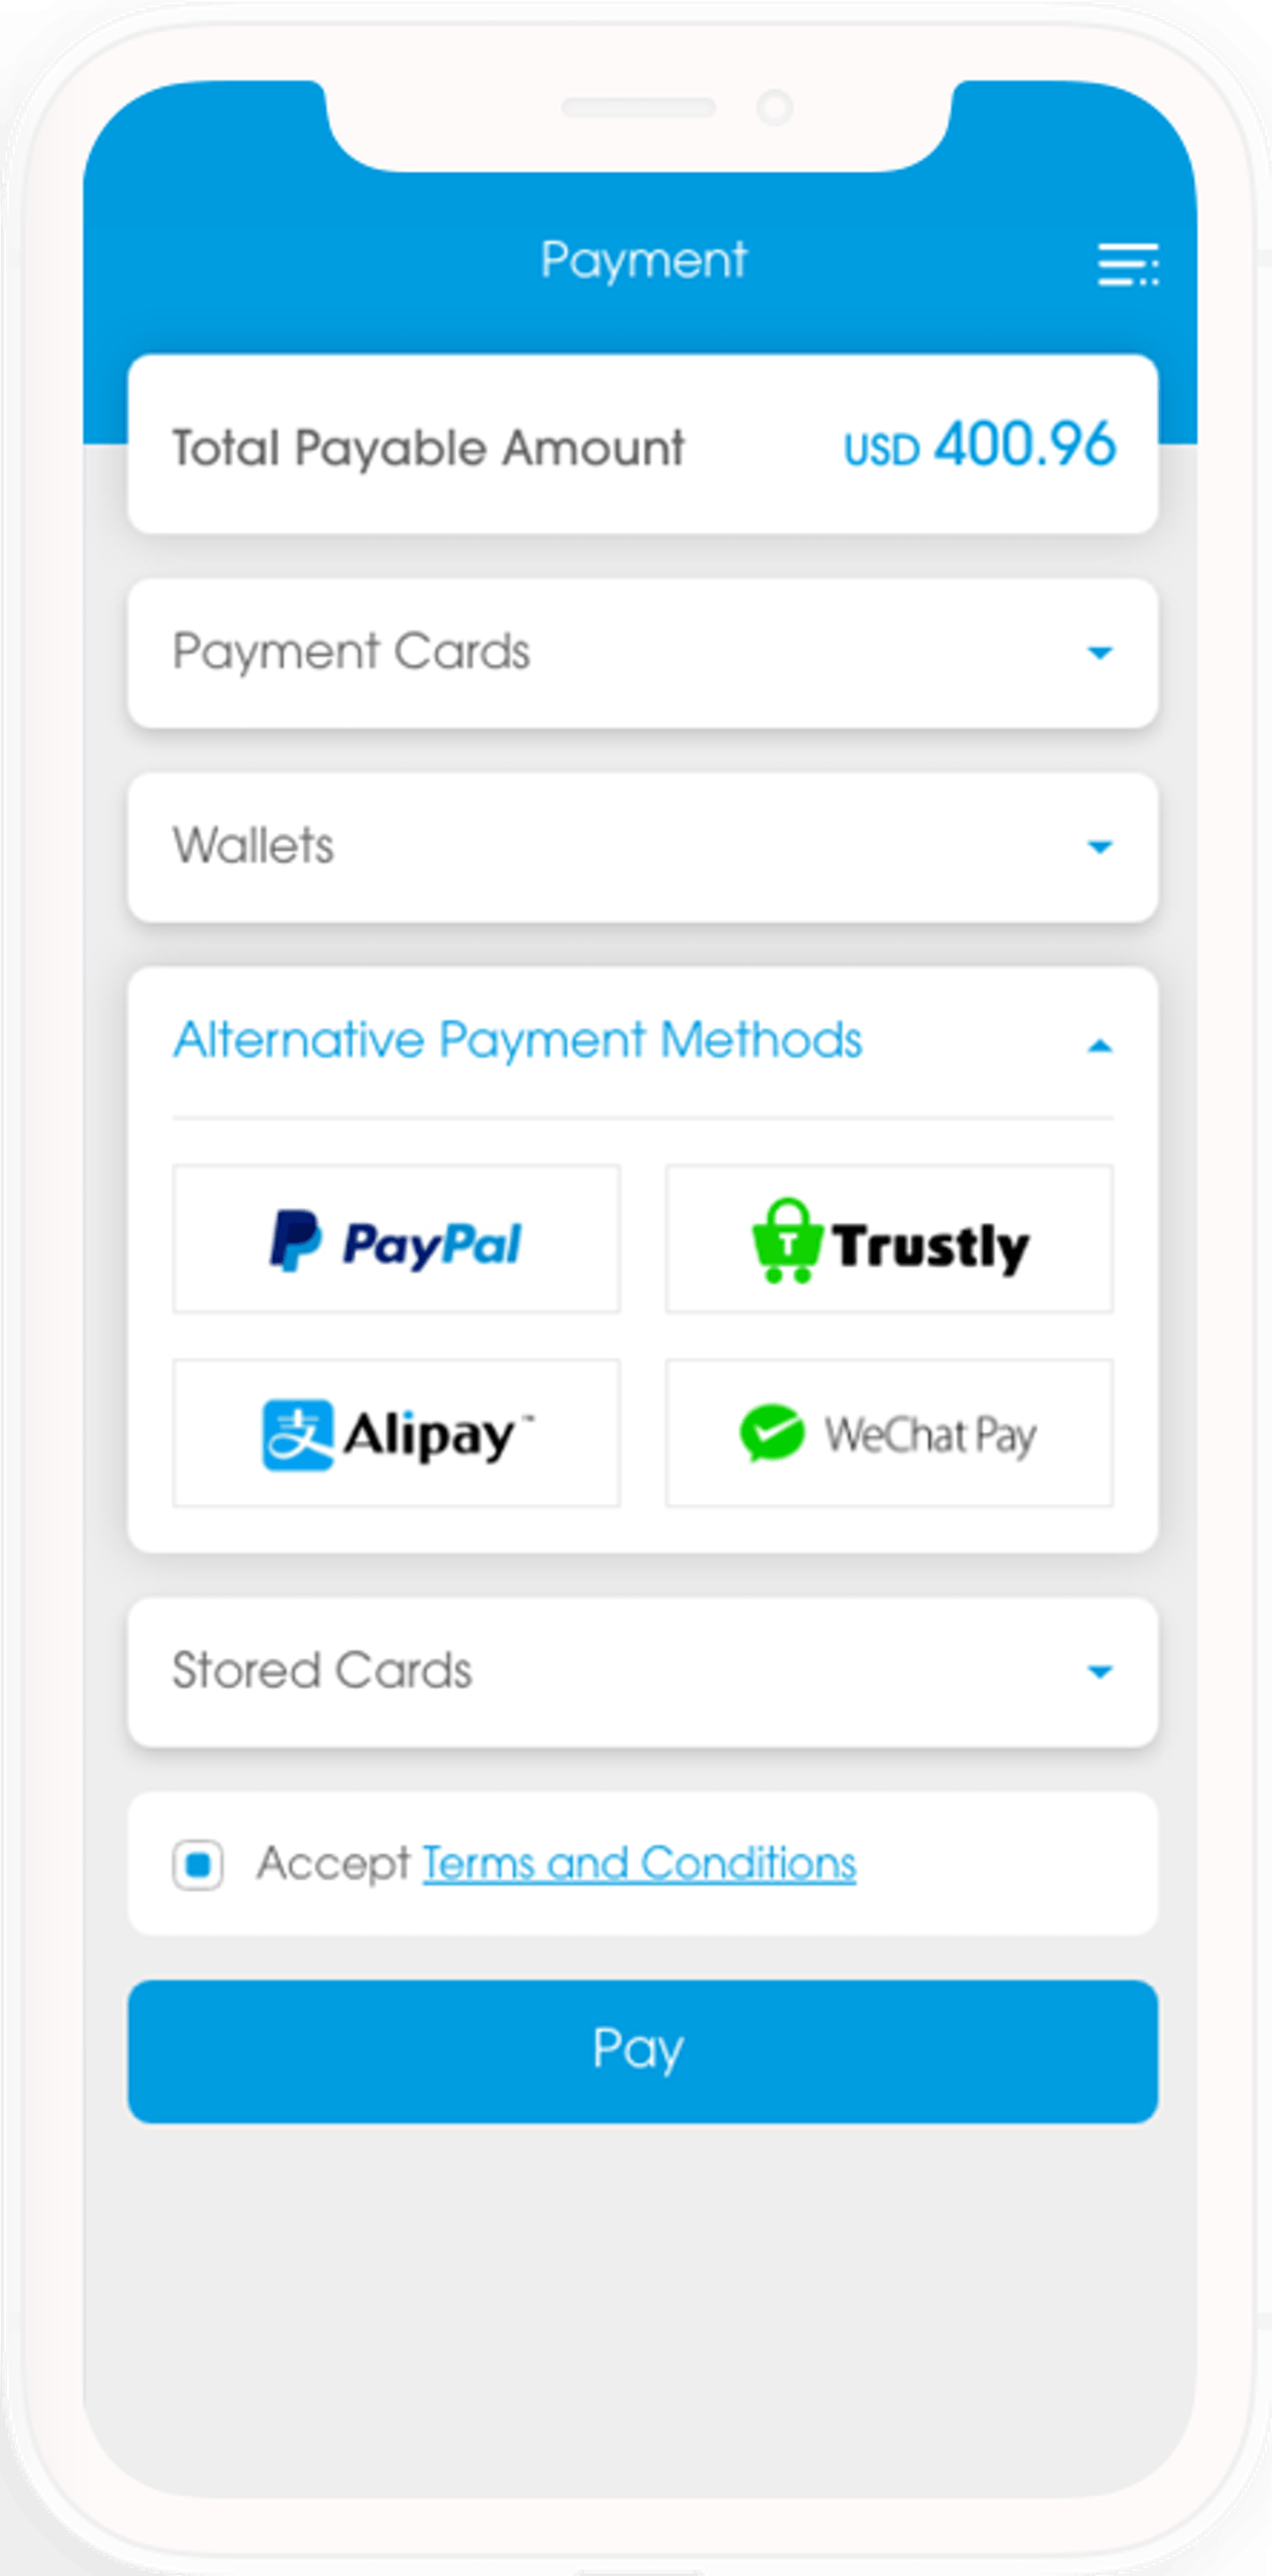 Voyage Alternative Payment Hub enabling to integrate across all channels any global or local alternative payment methods like third party wallet, bank transfers, mobile payment, installment and cash-based payment methods